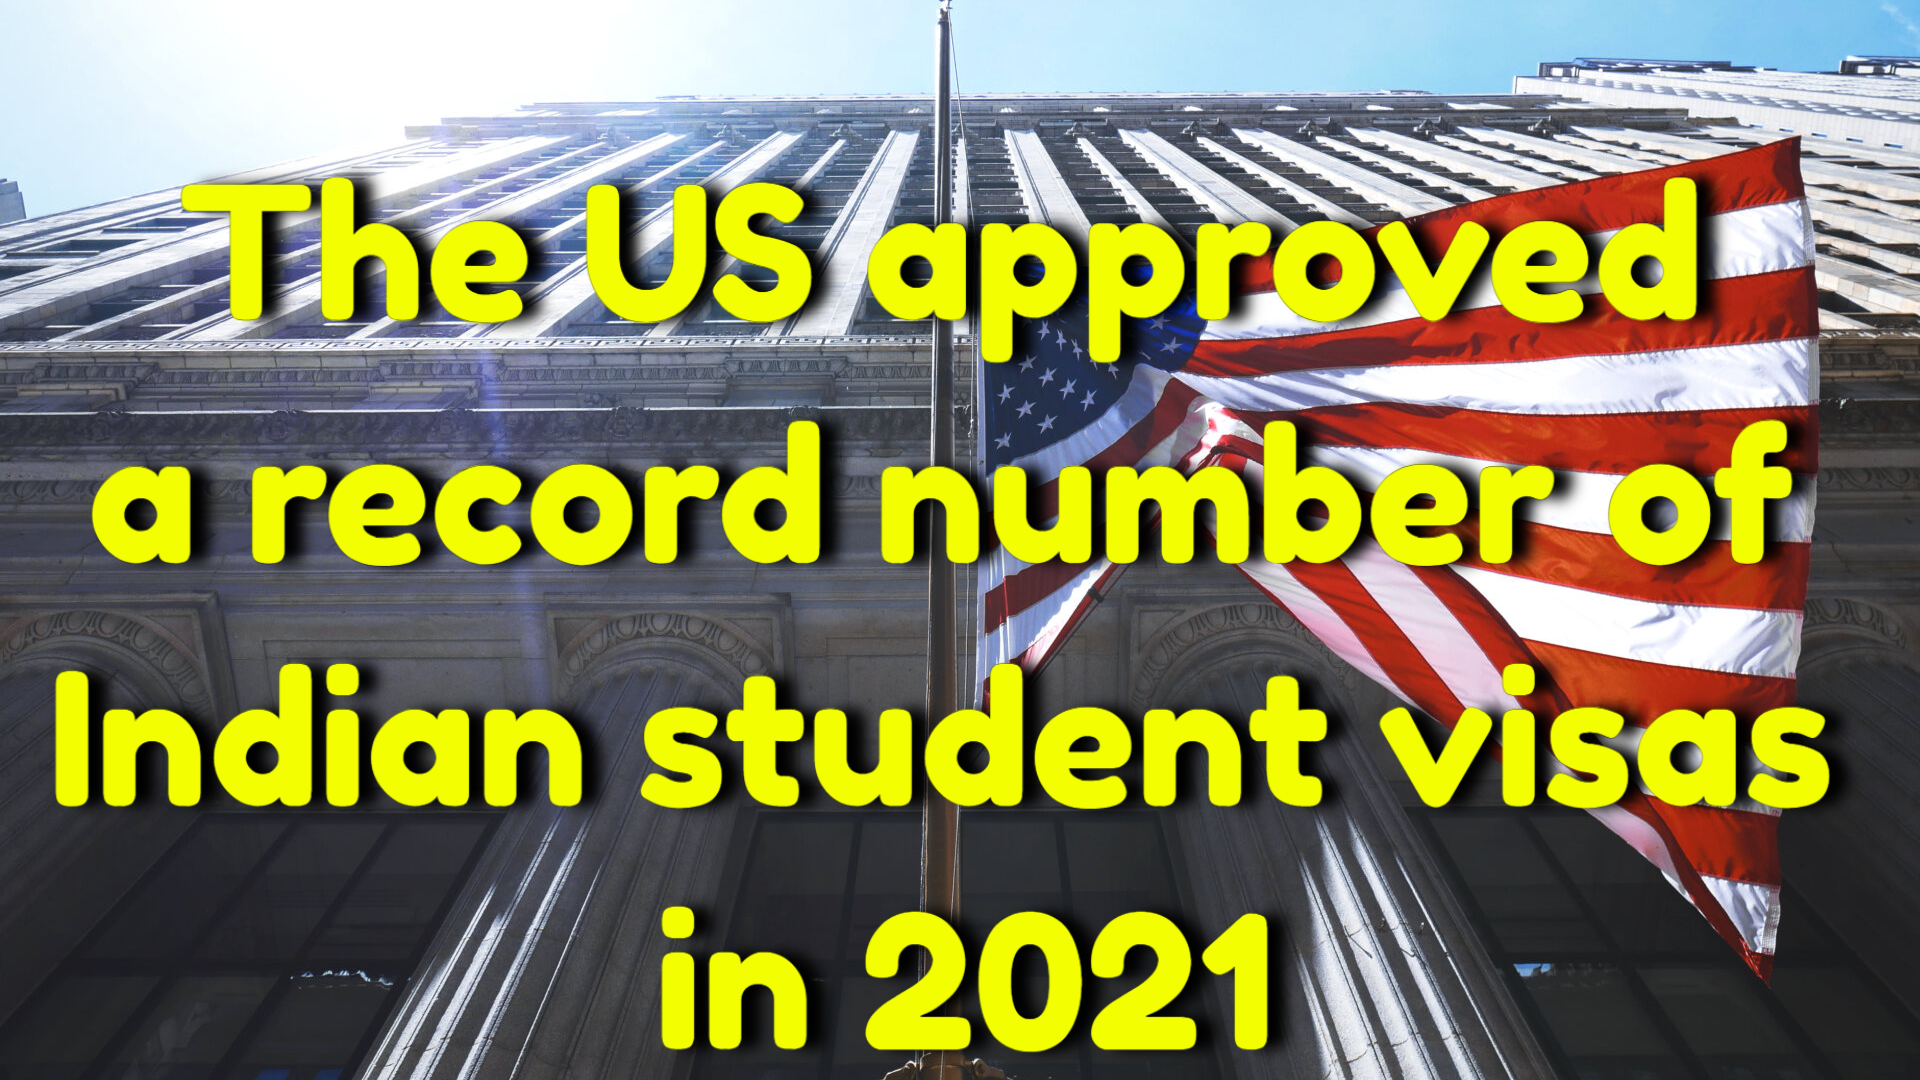 In 2021, the US approved a record number of Indian student visas